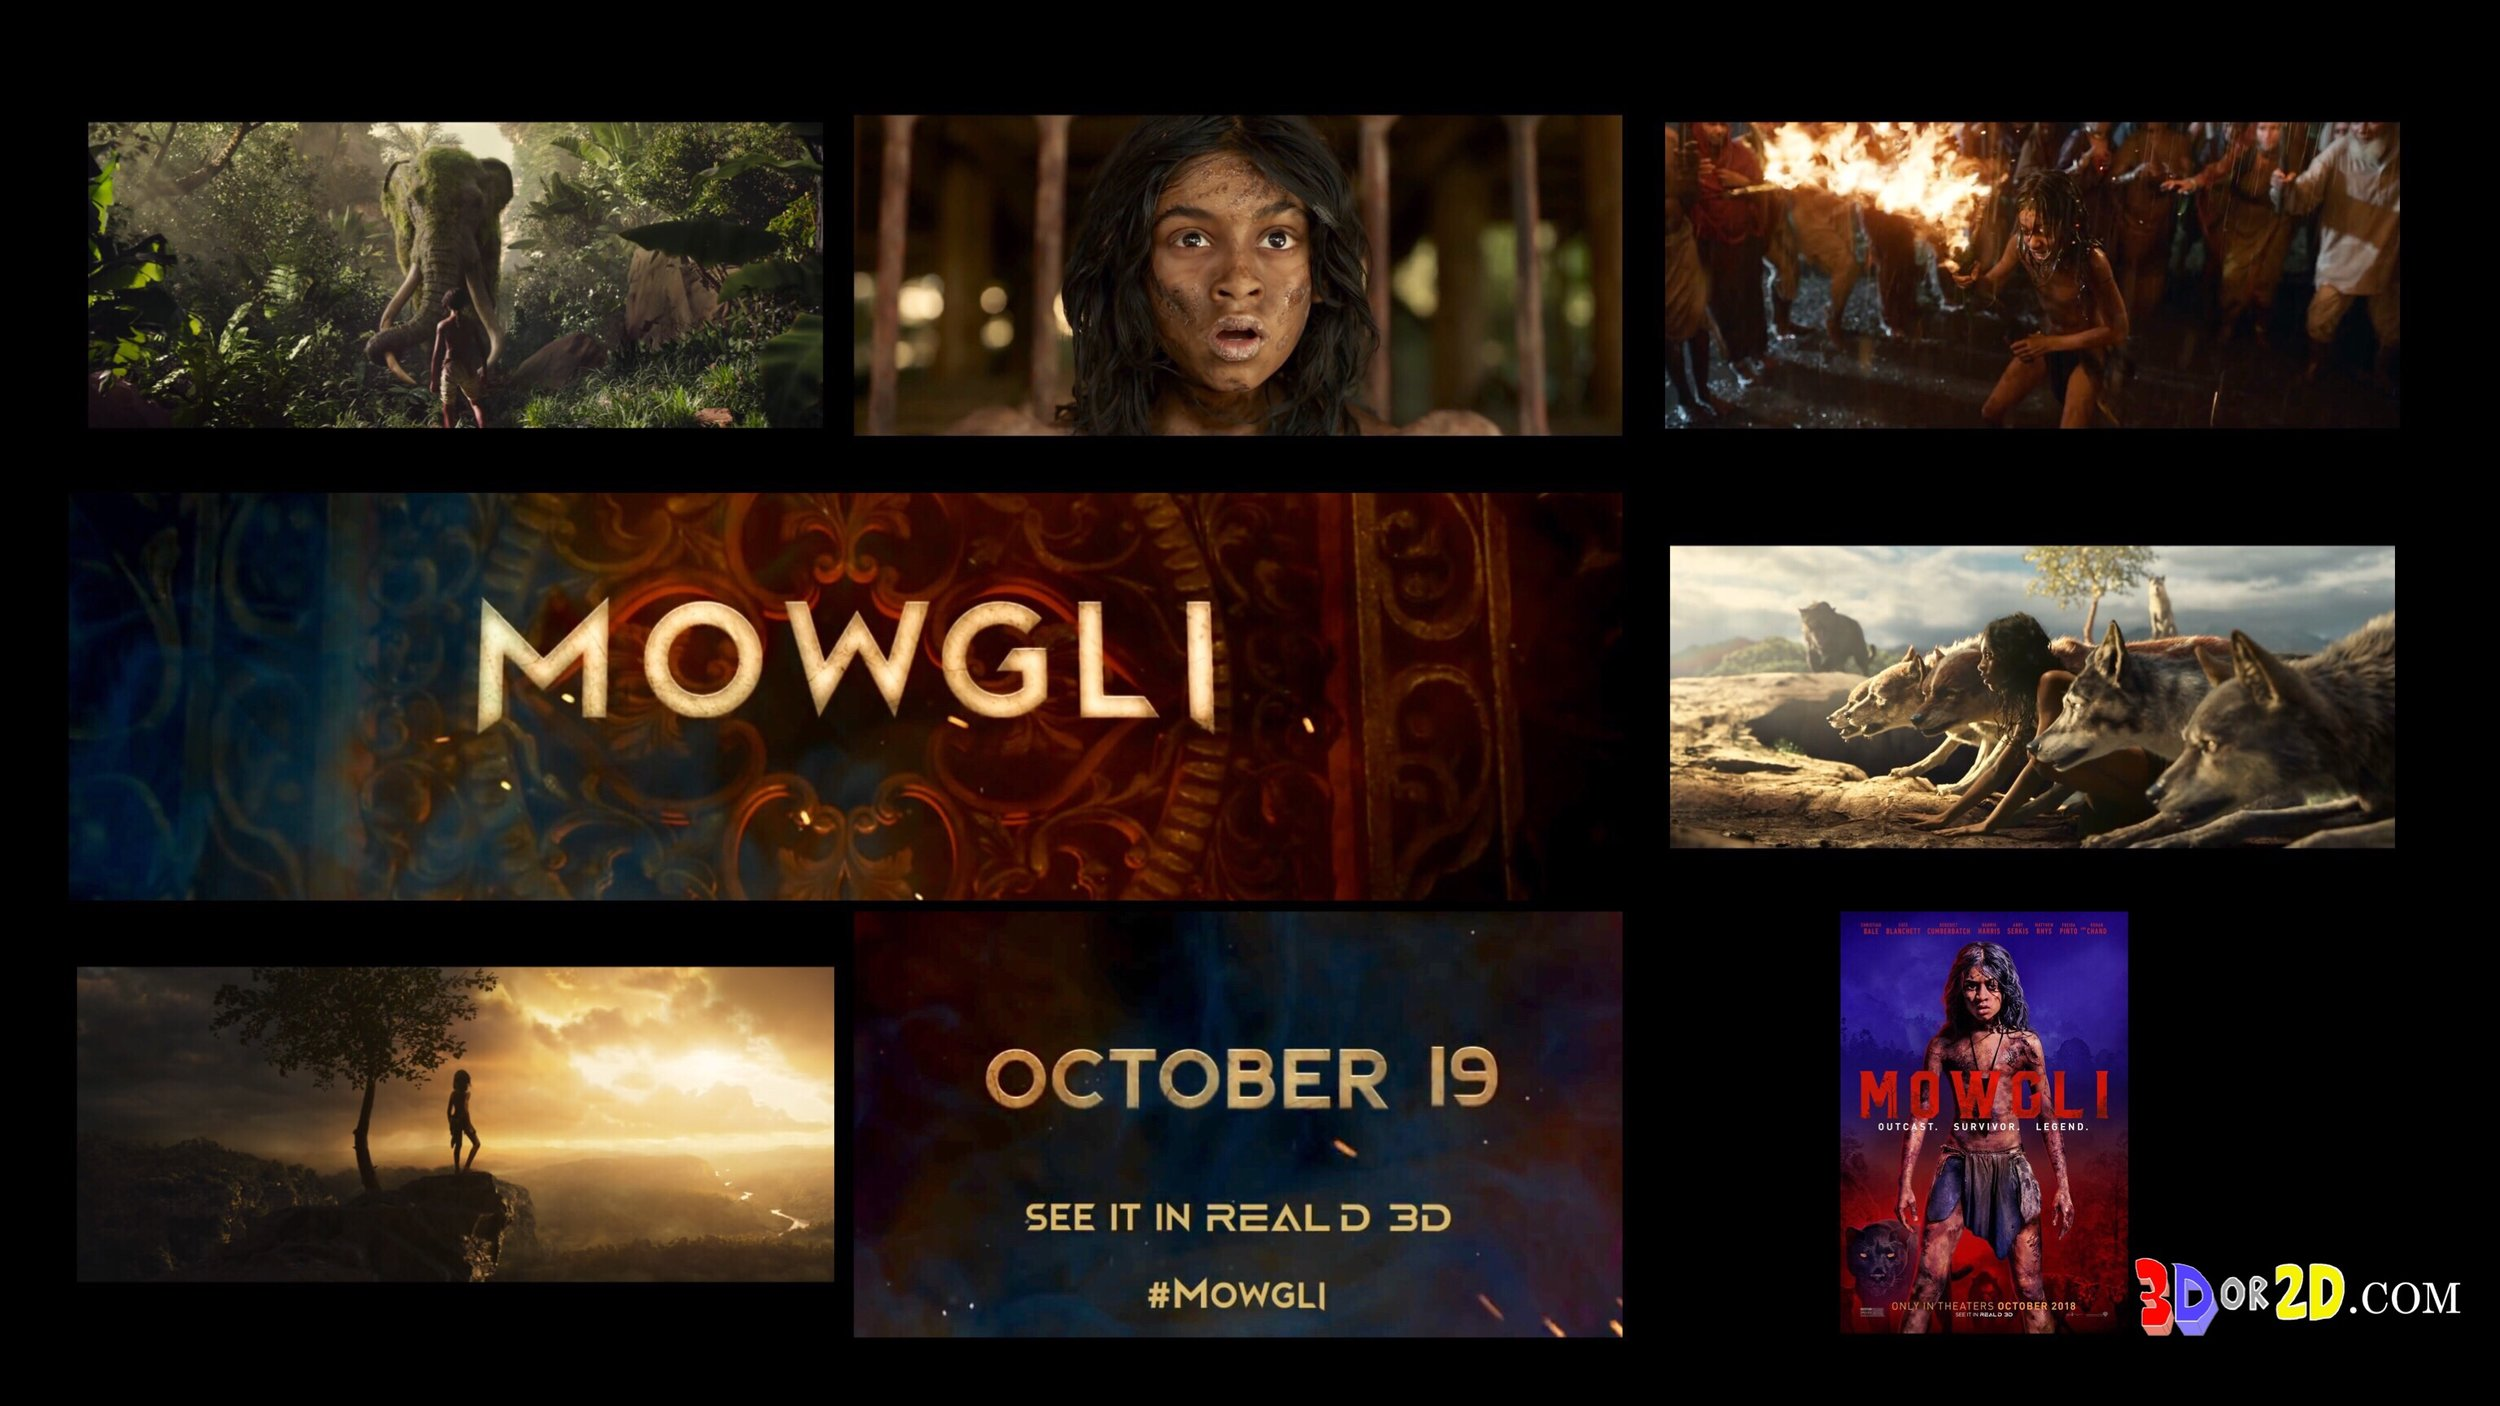 Photo collage of screen grabs from the Trailer